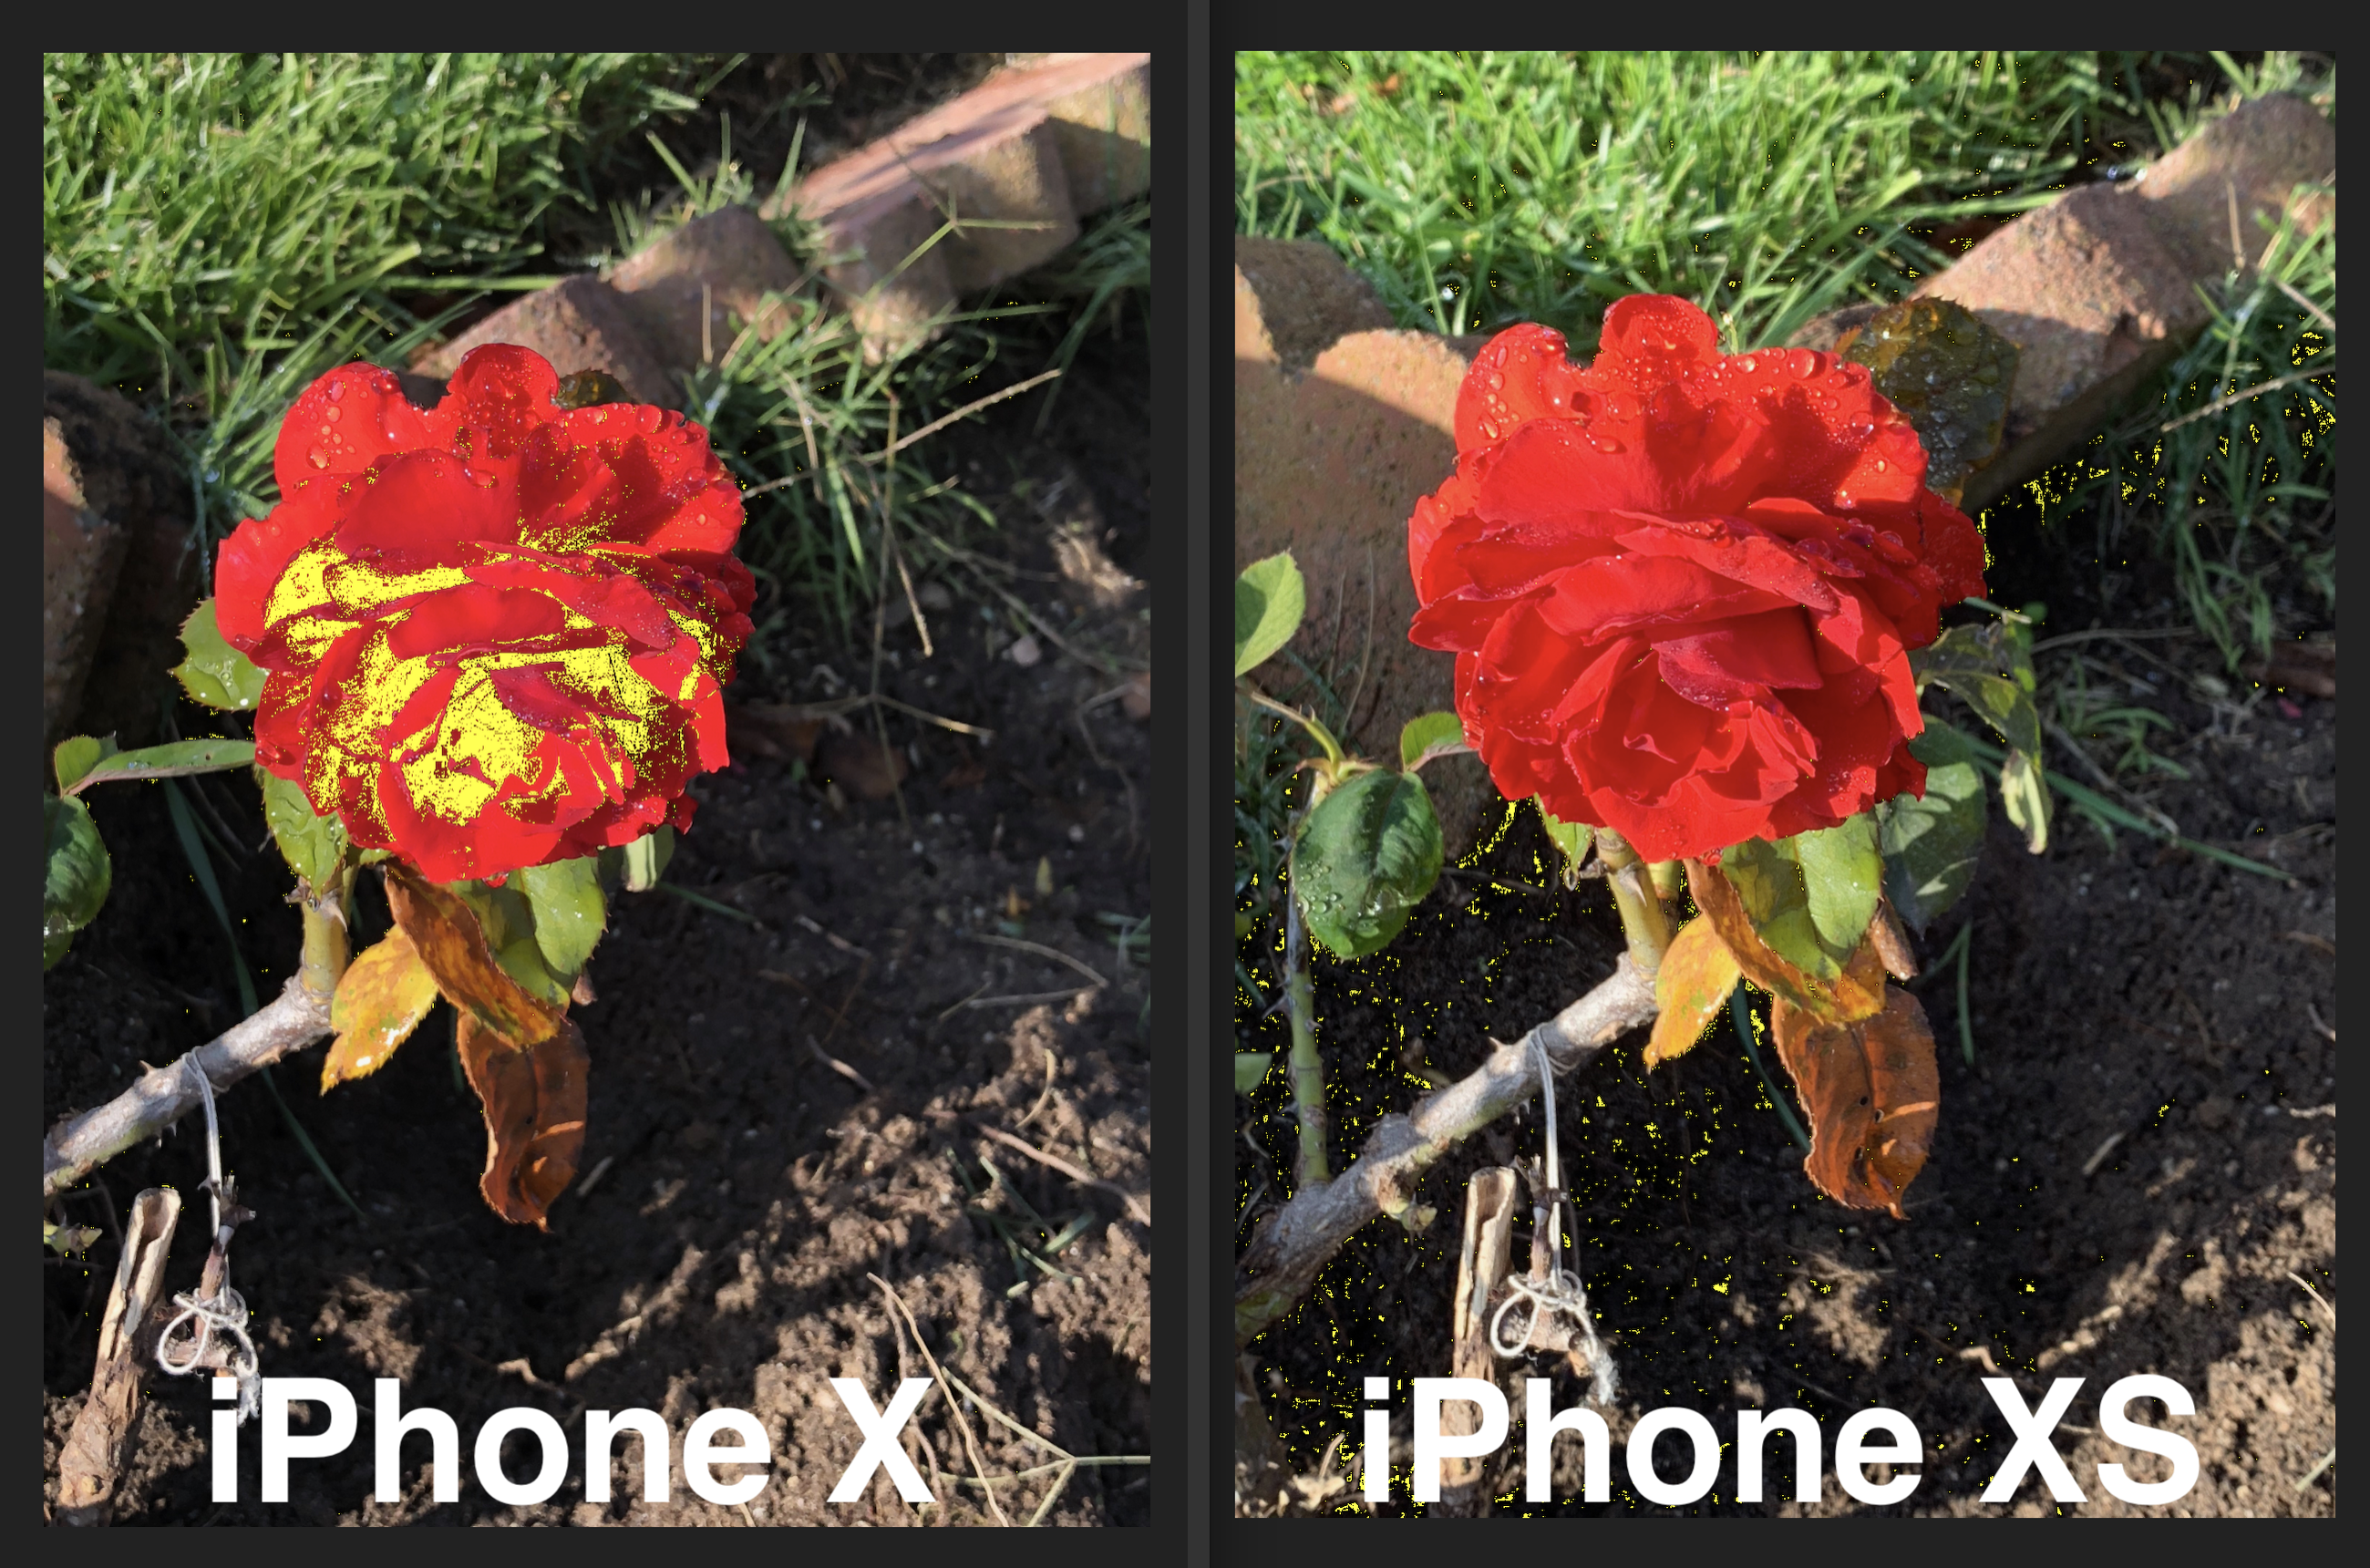 IPhone X vs XS red rose clipped tones 2600 72